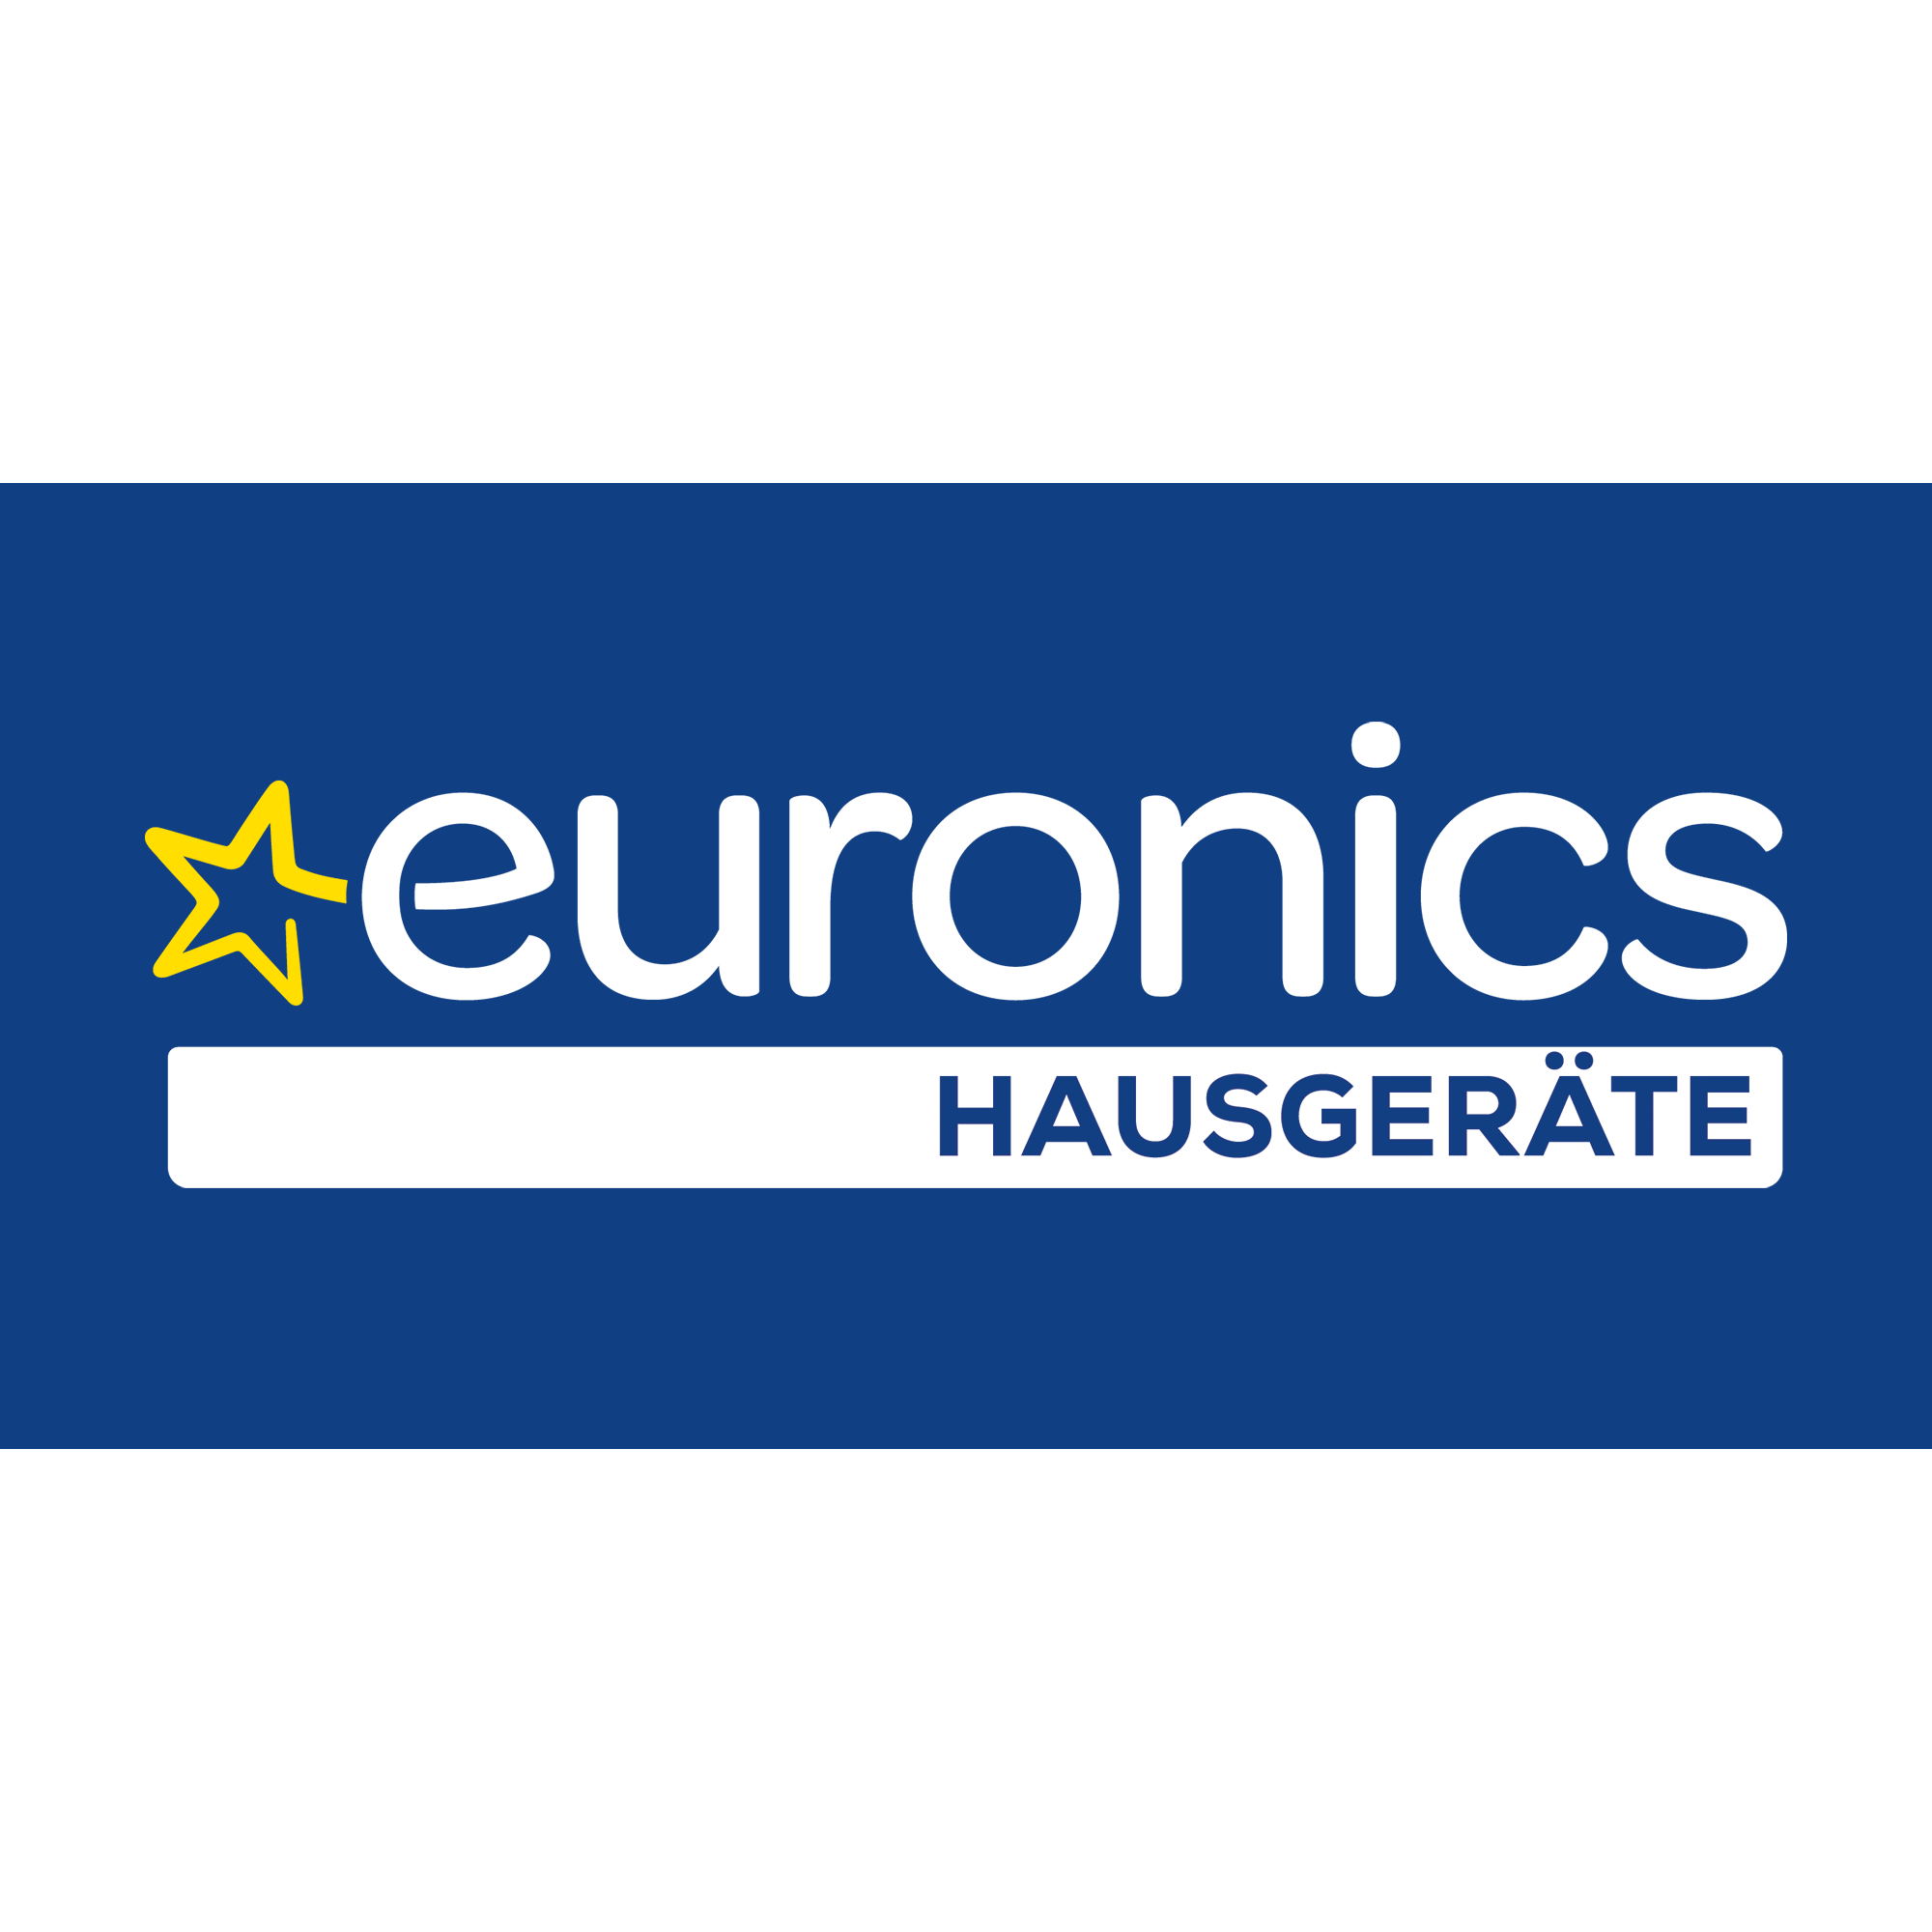 EURONICS Mantel